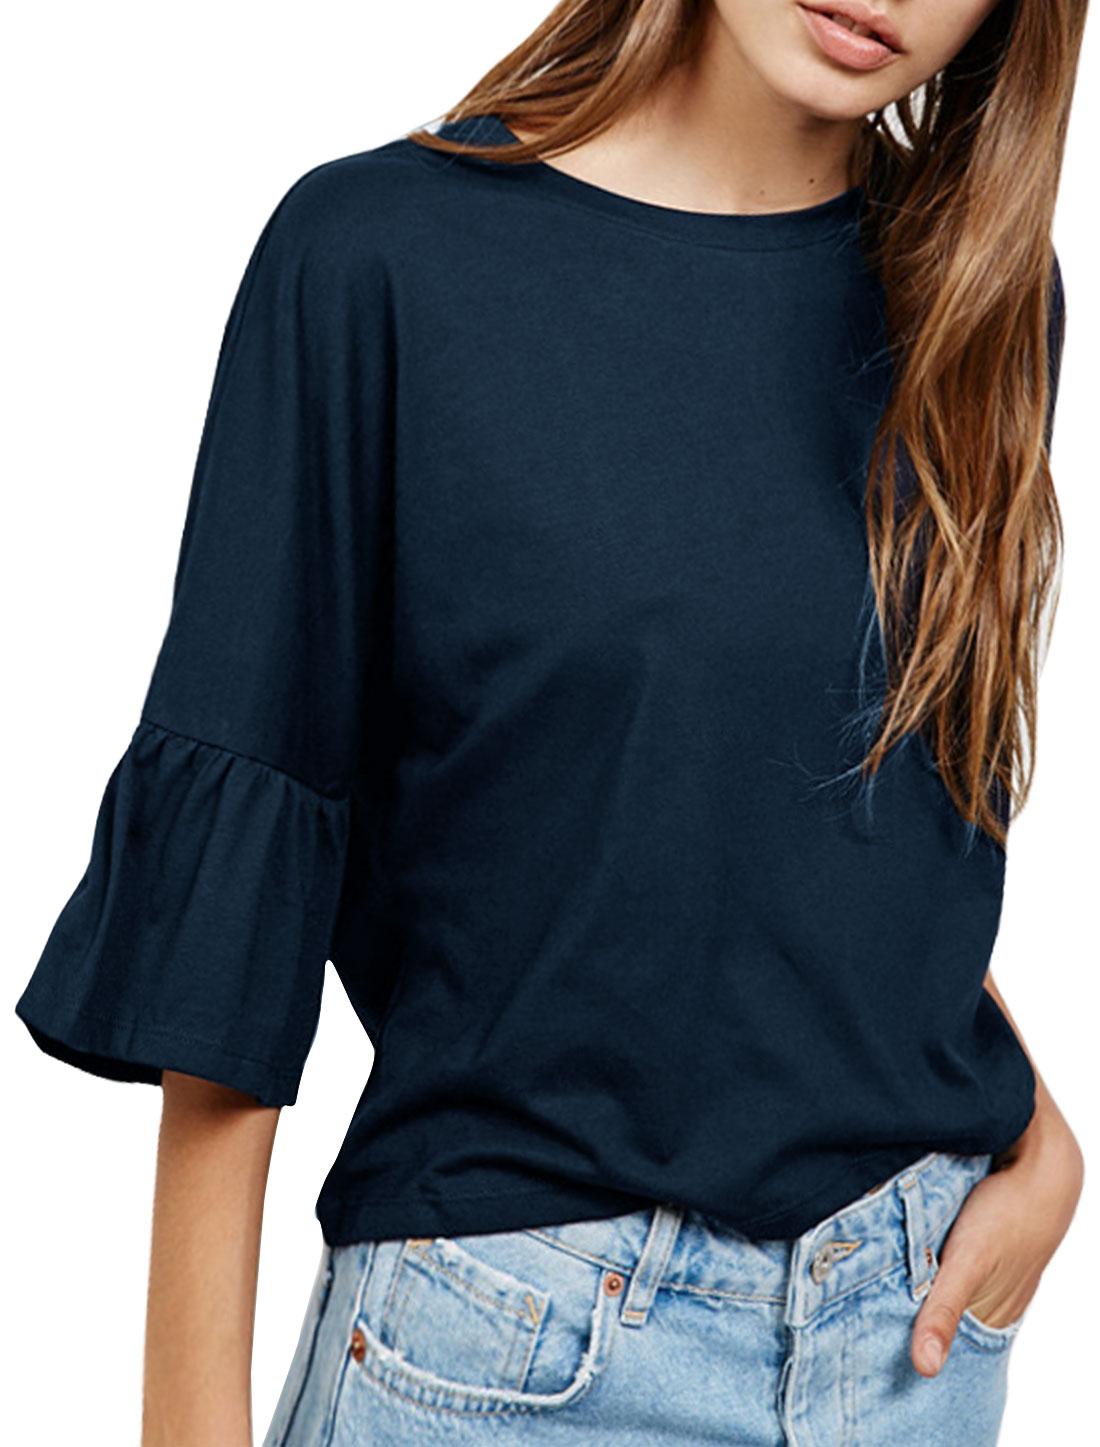 Women 3/4 Bell Sleeve Drop Shoulder Loose Blouse Blue S